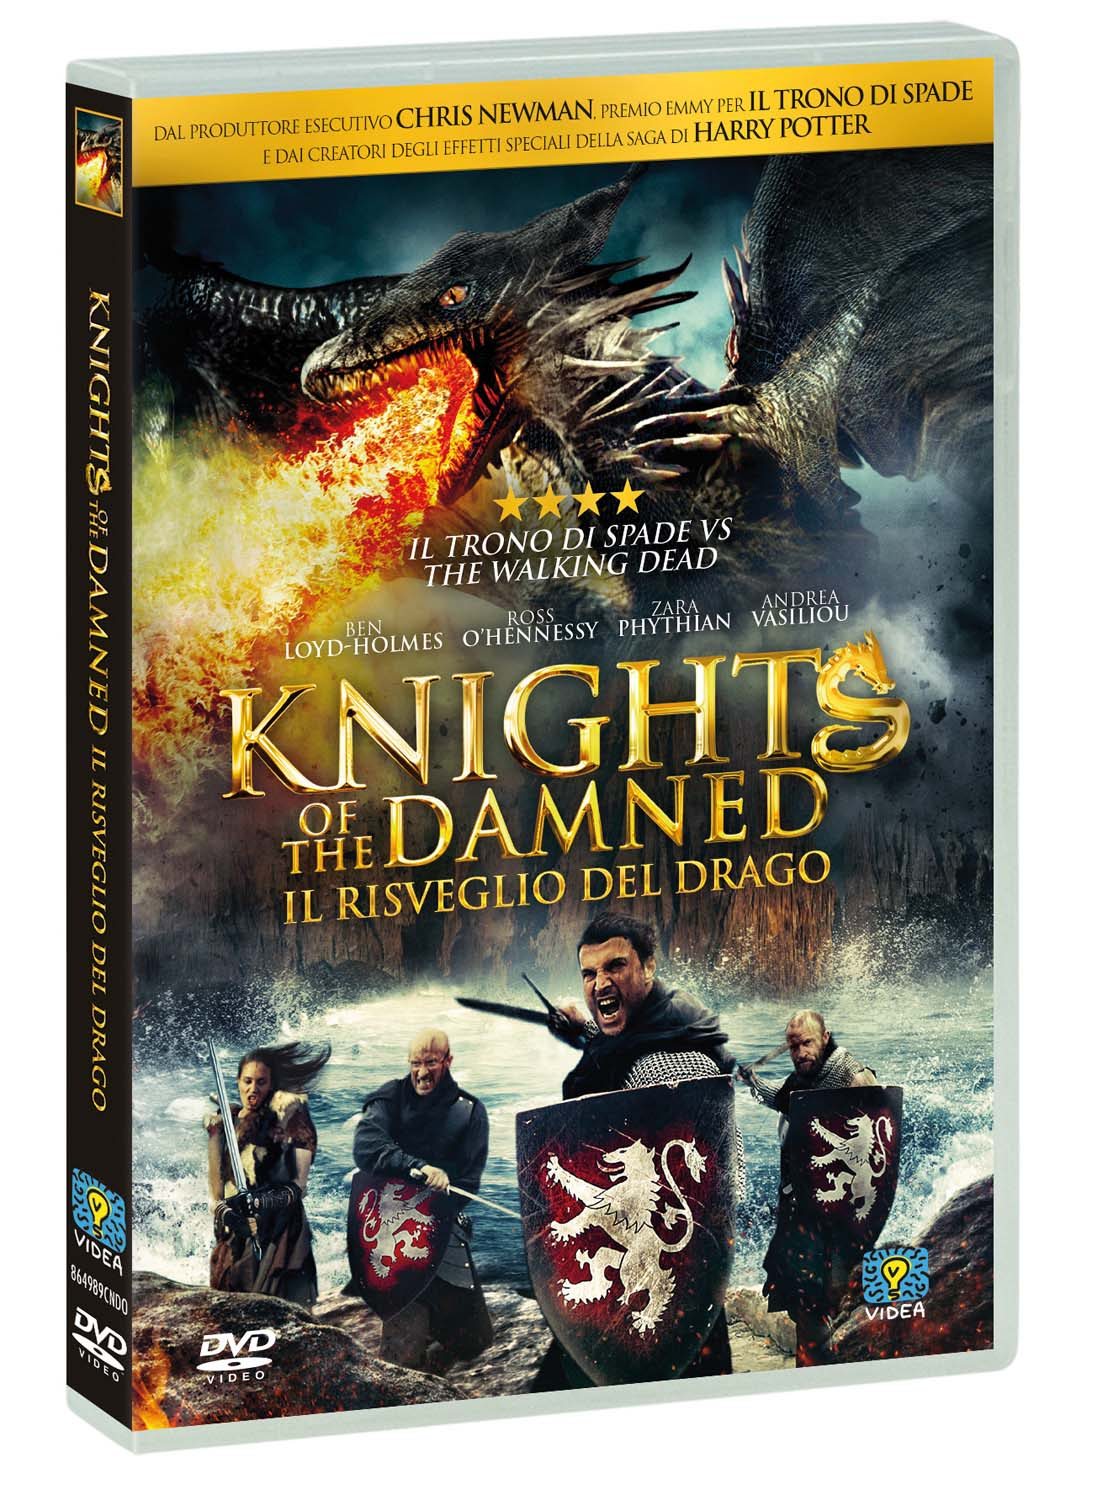 KNIGHTS OF THE DAMNED - IL RISVEGLIO DEL DRAGO (DVD)